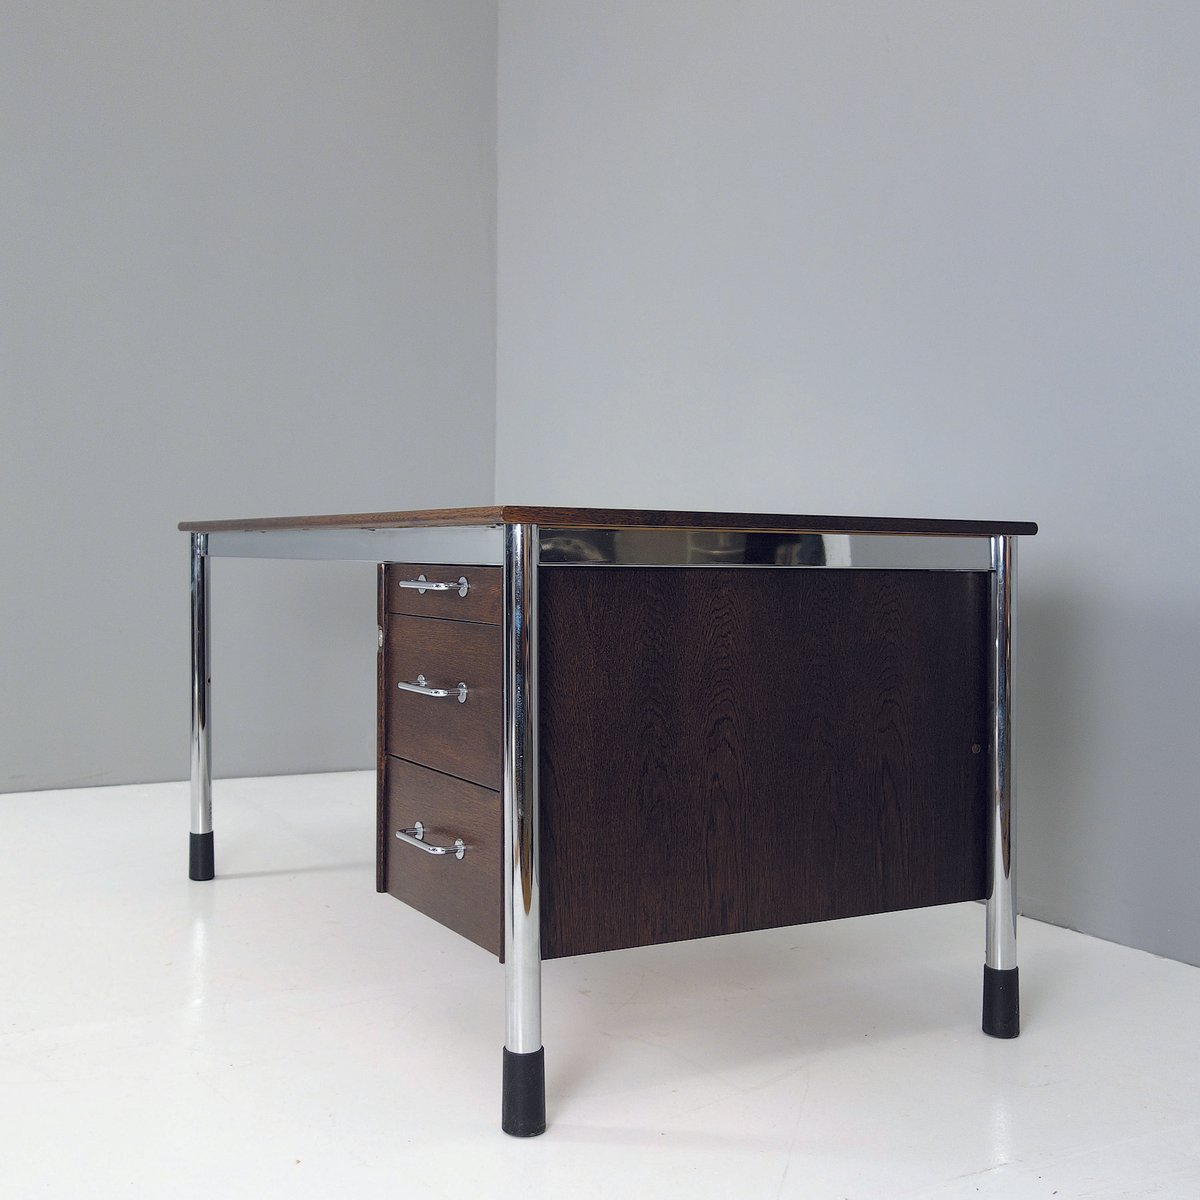 Writing Desk From Ikea, 1970s For Sale At Pamono. Standing Desk Cubicle. Duncan Phyfe Desk. Double Vanity With Makeup Table. Simplified Building Standing Desk. Drawer Latches Baby Proof. Big Lots Glass Desk. Serving Tables. Shelf With Drawers Wall Mounted